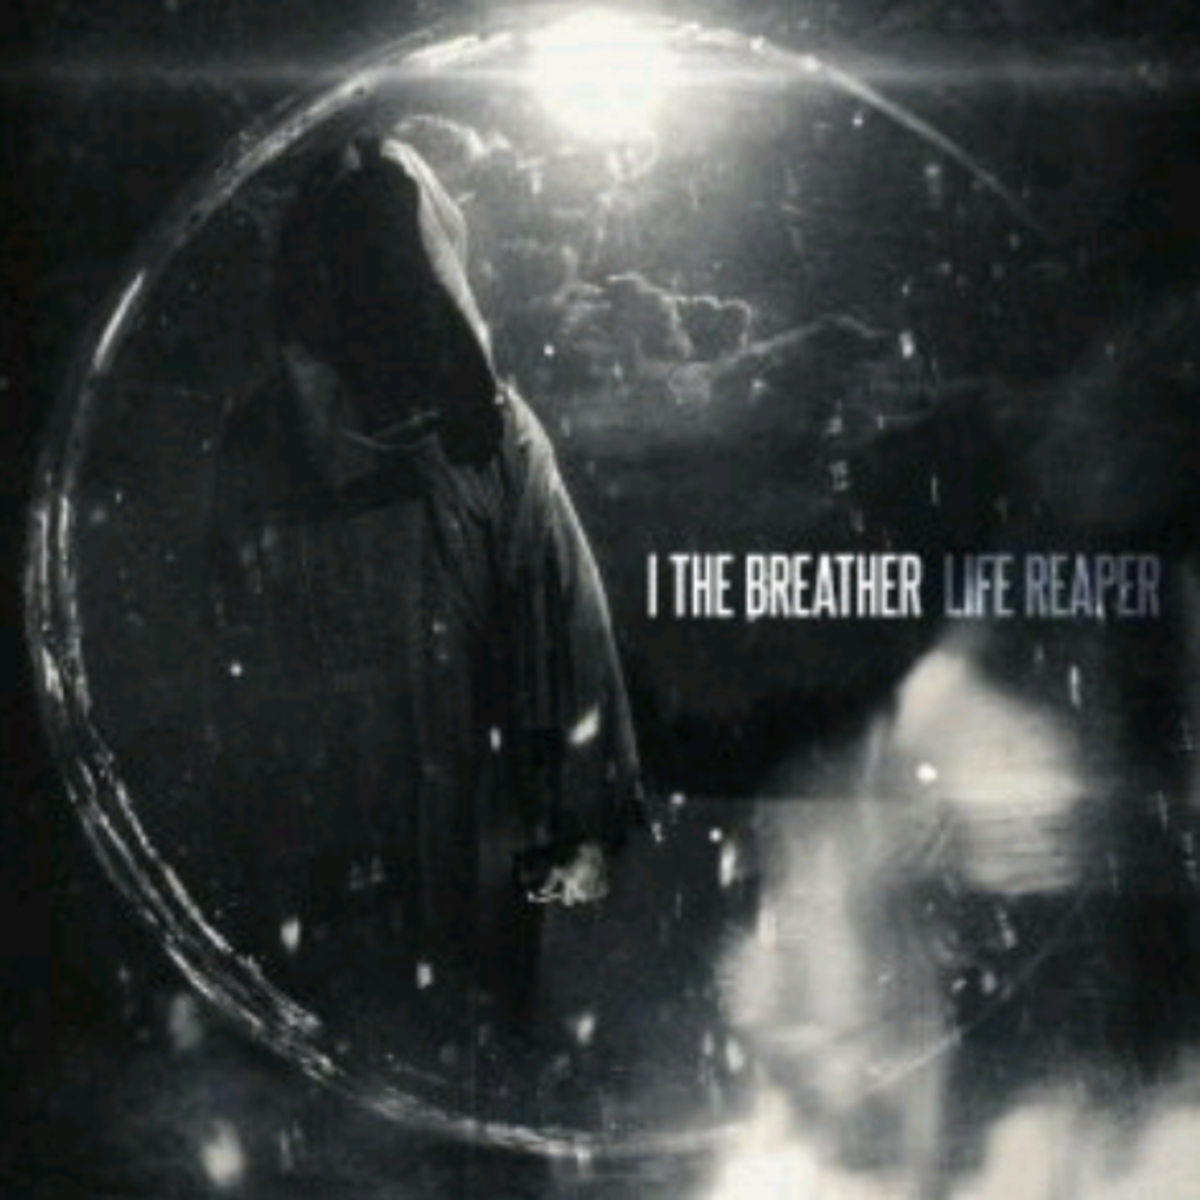 """Life Reaper"" by I the Breather"